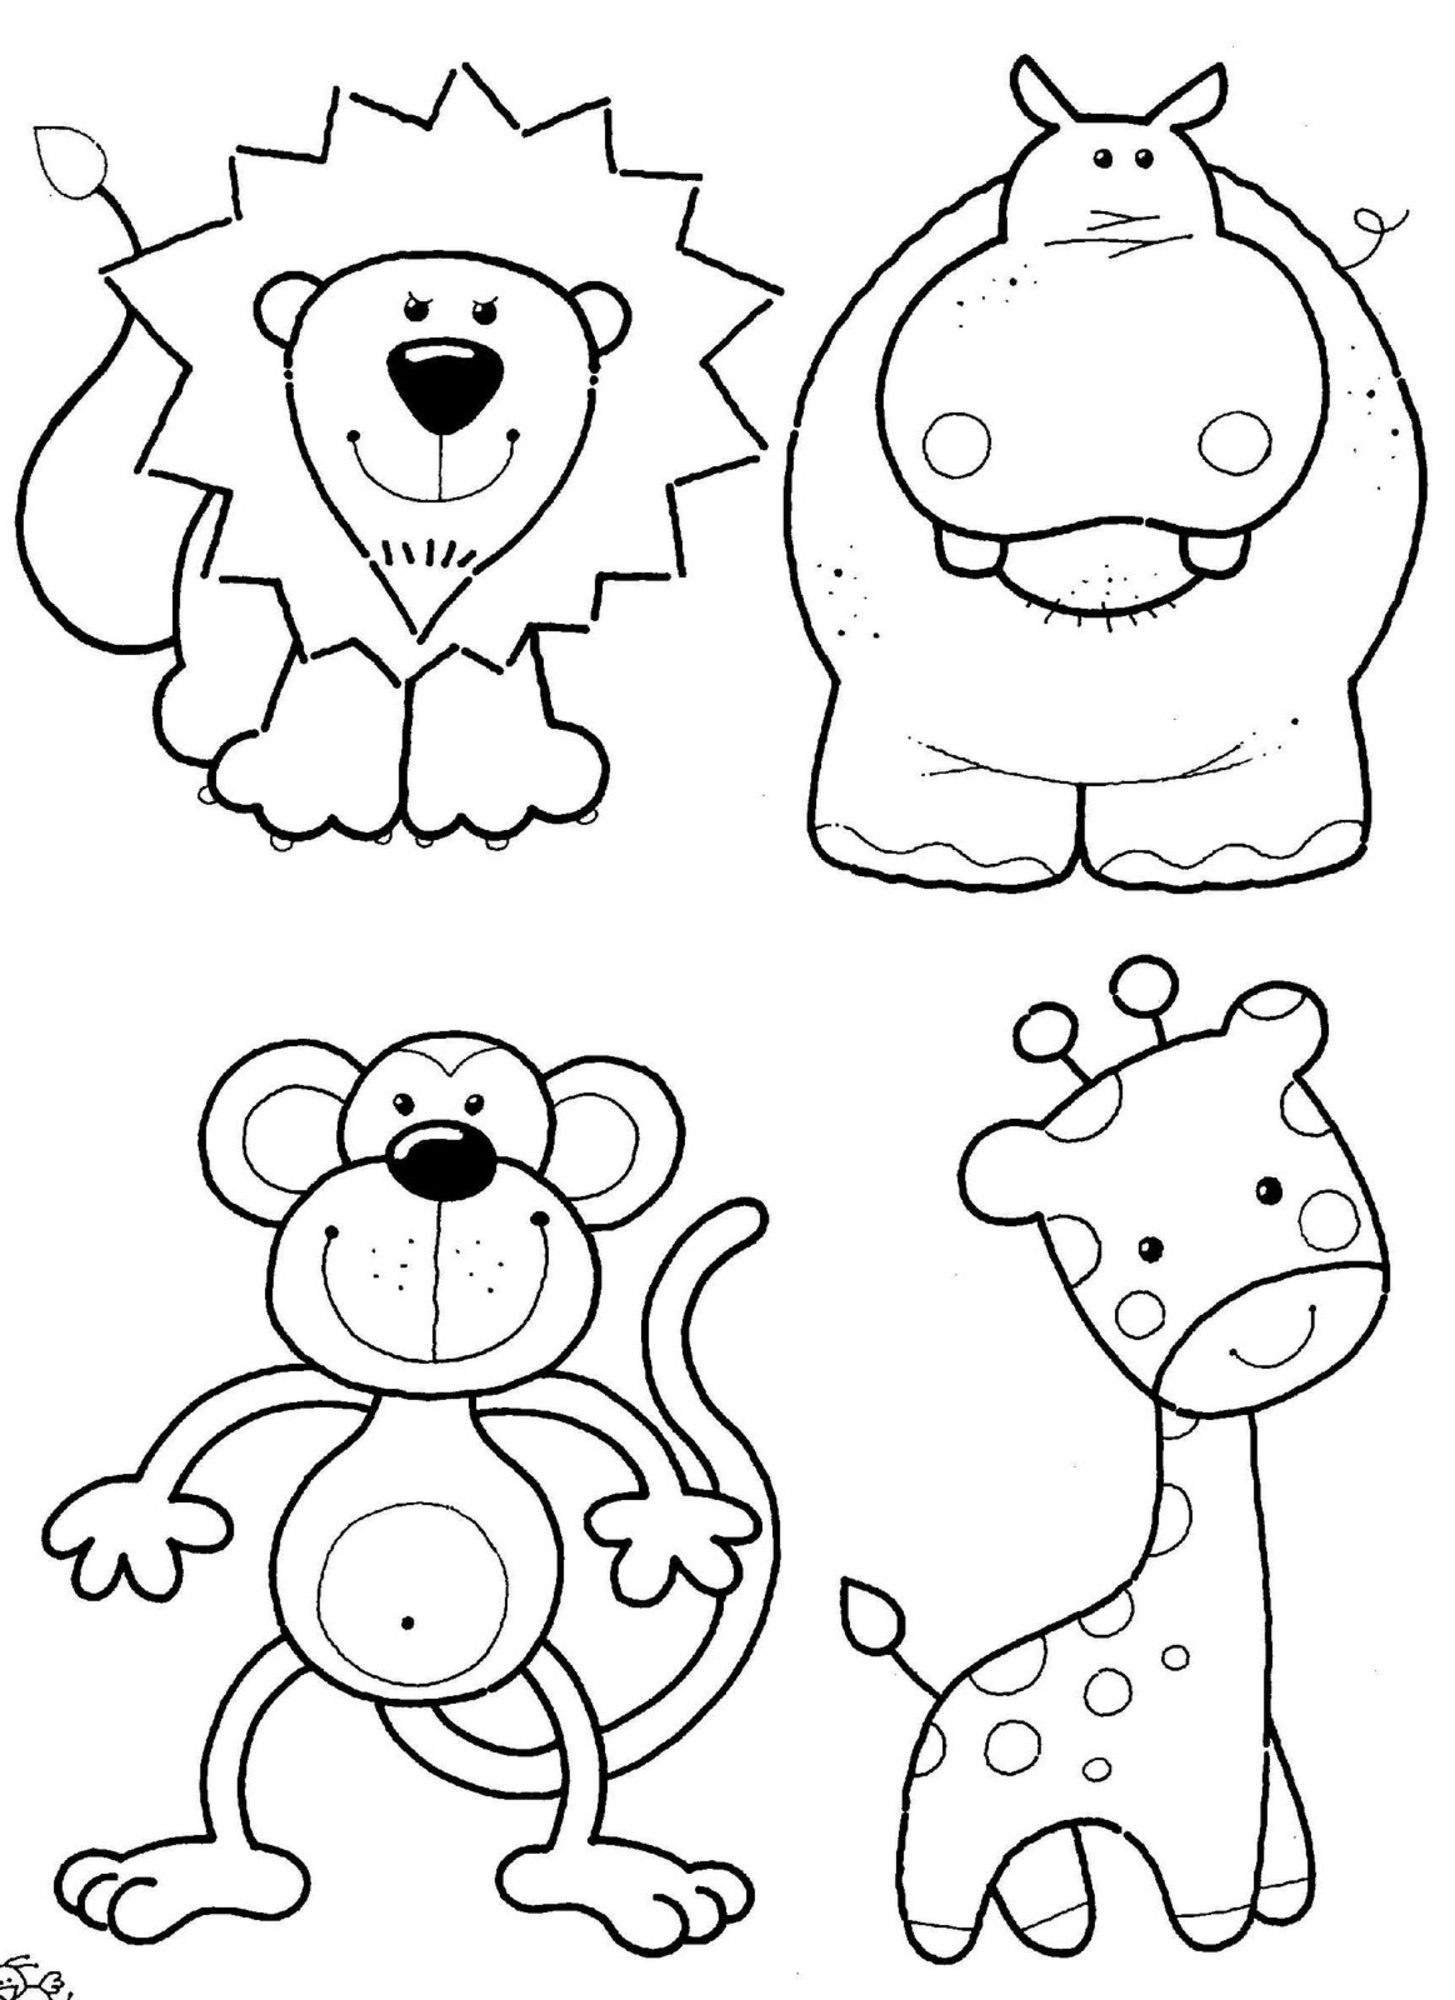 zoo animals colouring zoo animals coloring pages best coloring pages for kids zoo animals colouring